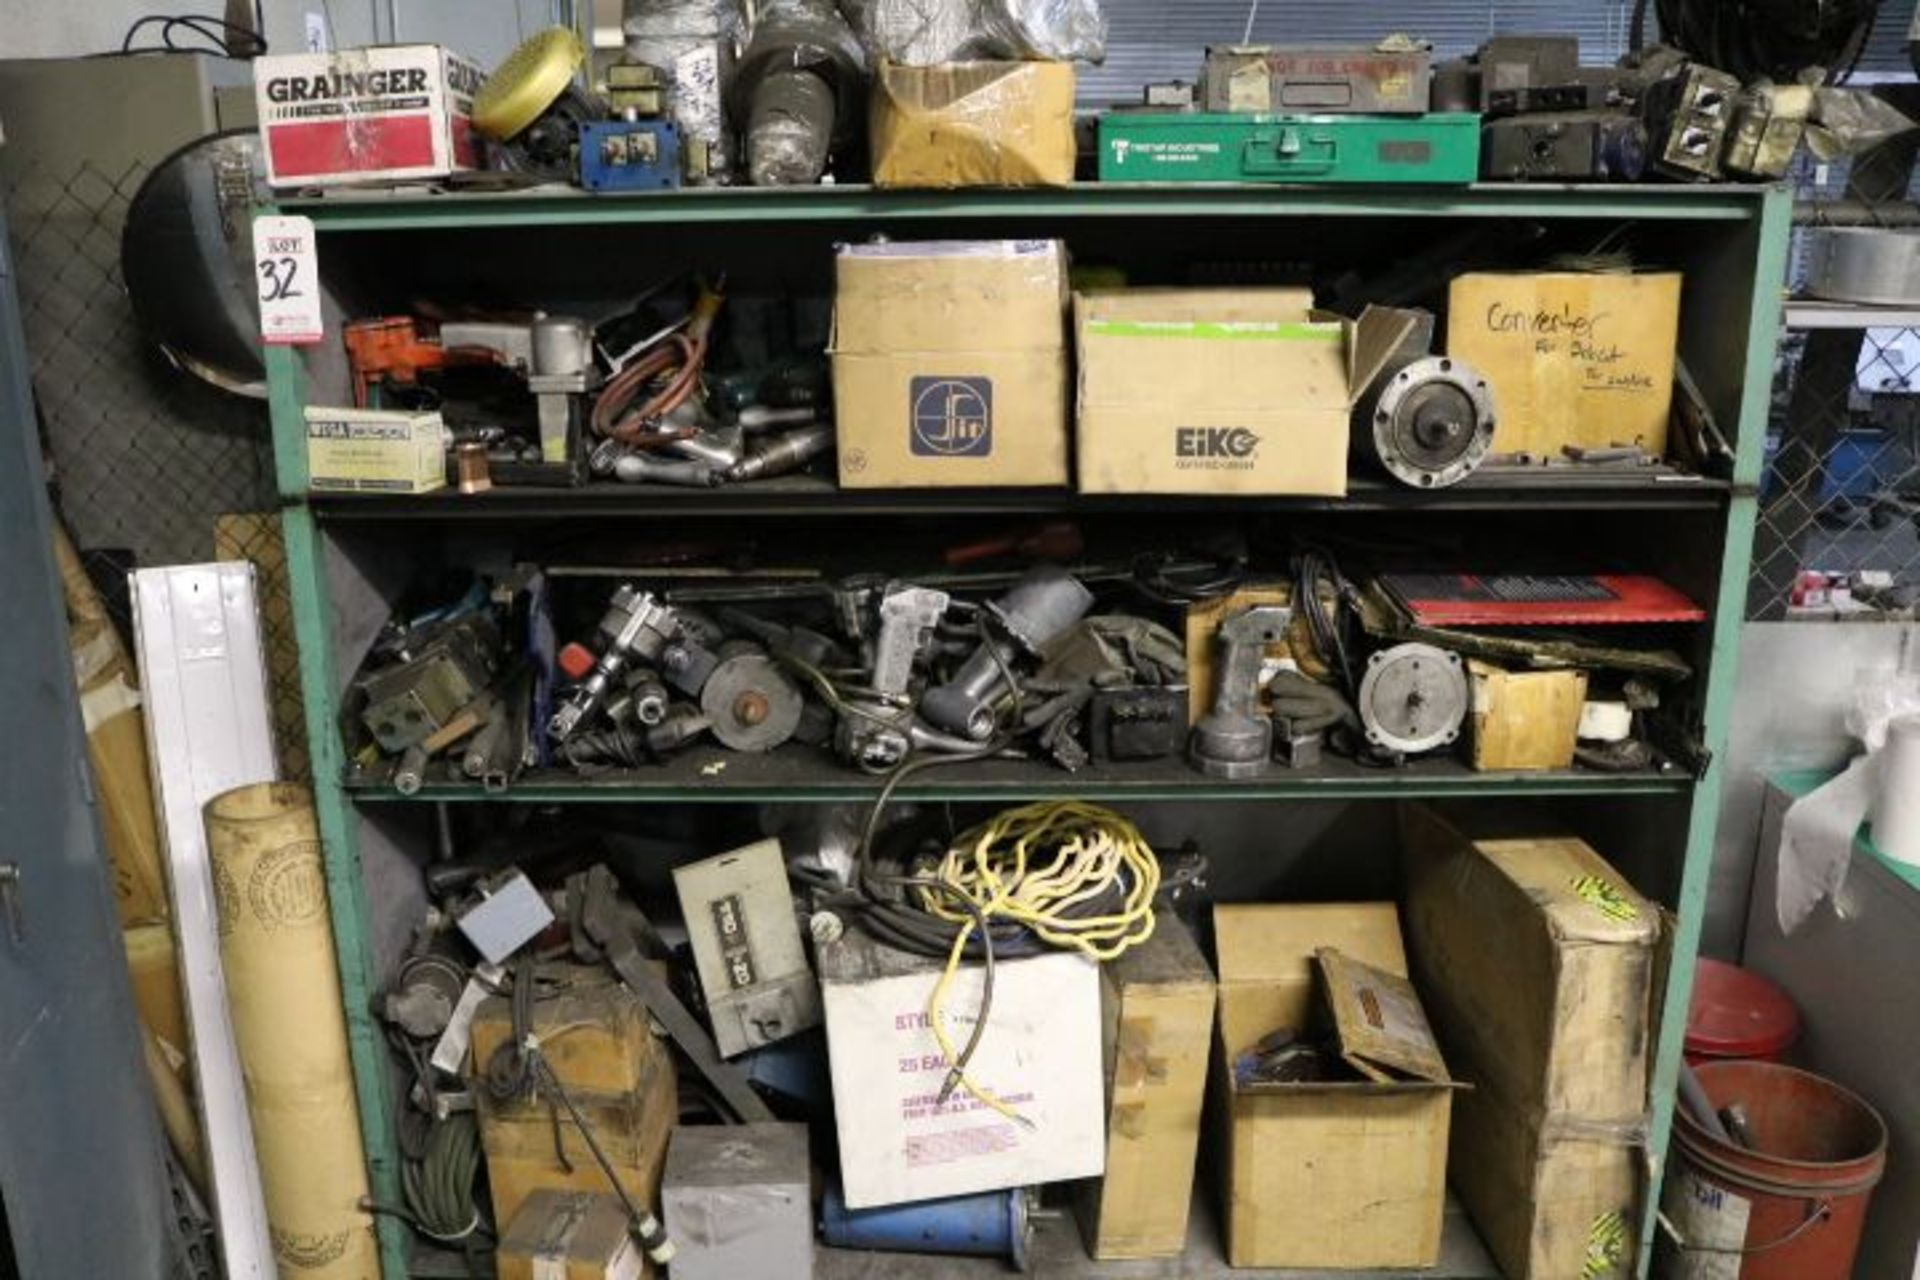 Lot 32 - CABINET W/ ASSORTED AIR TOOLS, PNEUMATIC DRILLS, STAPLERS, ETC.